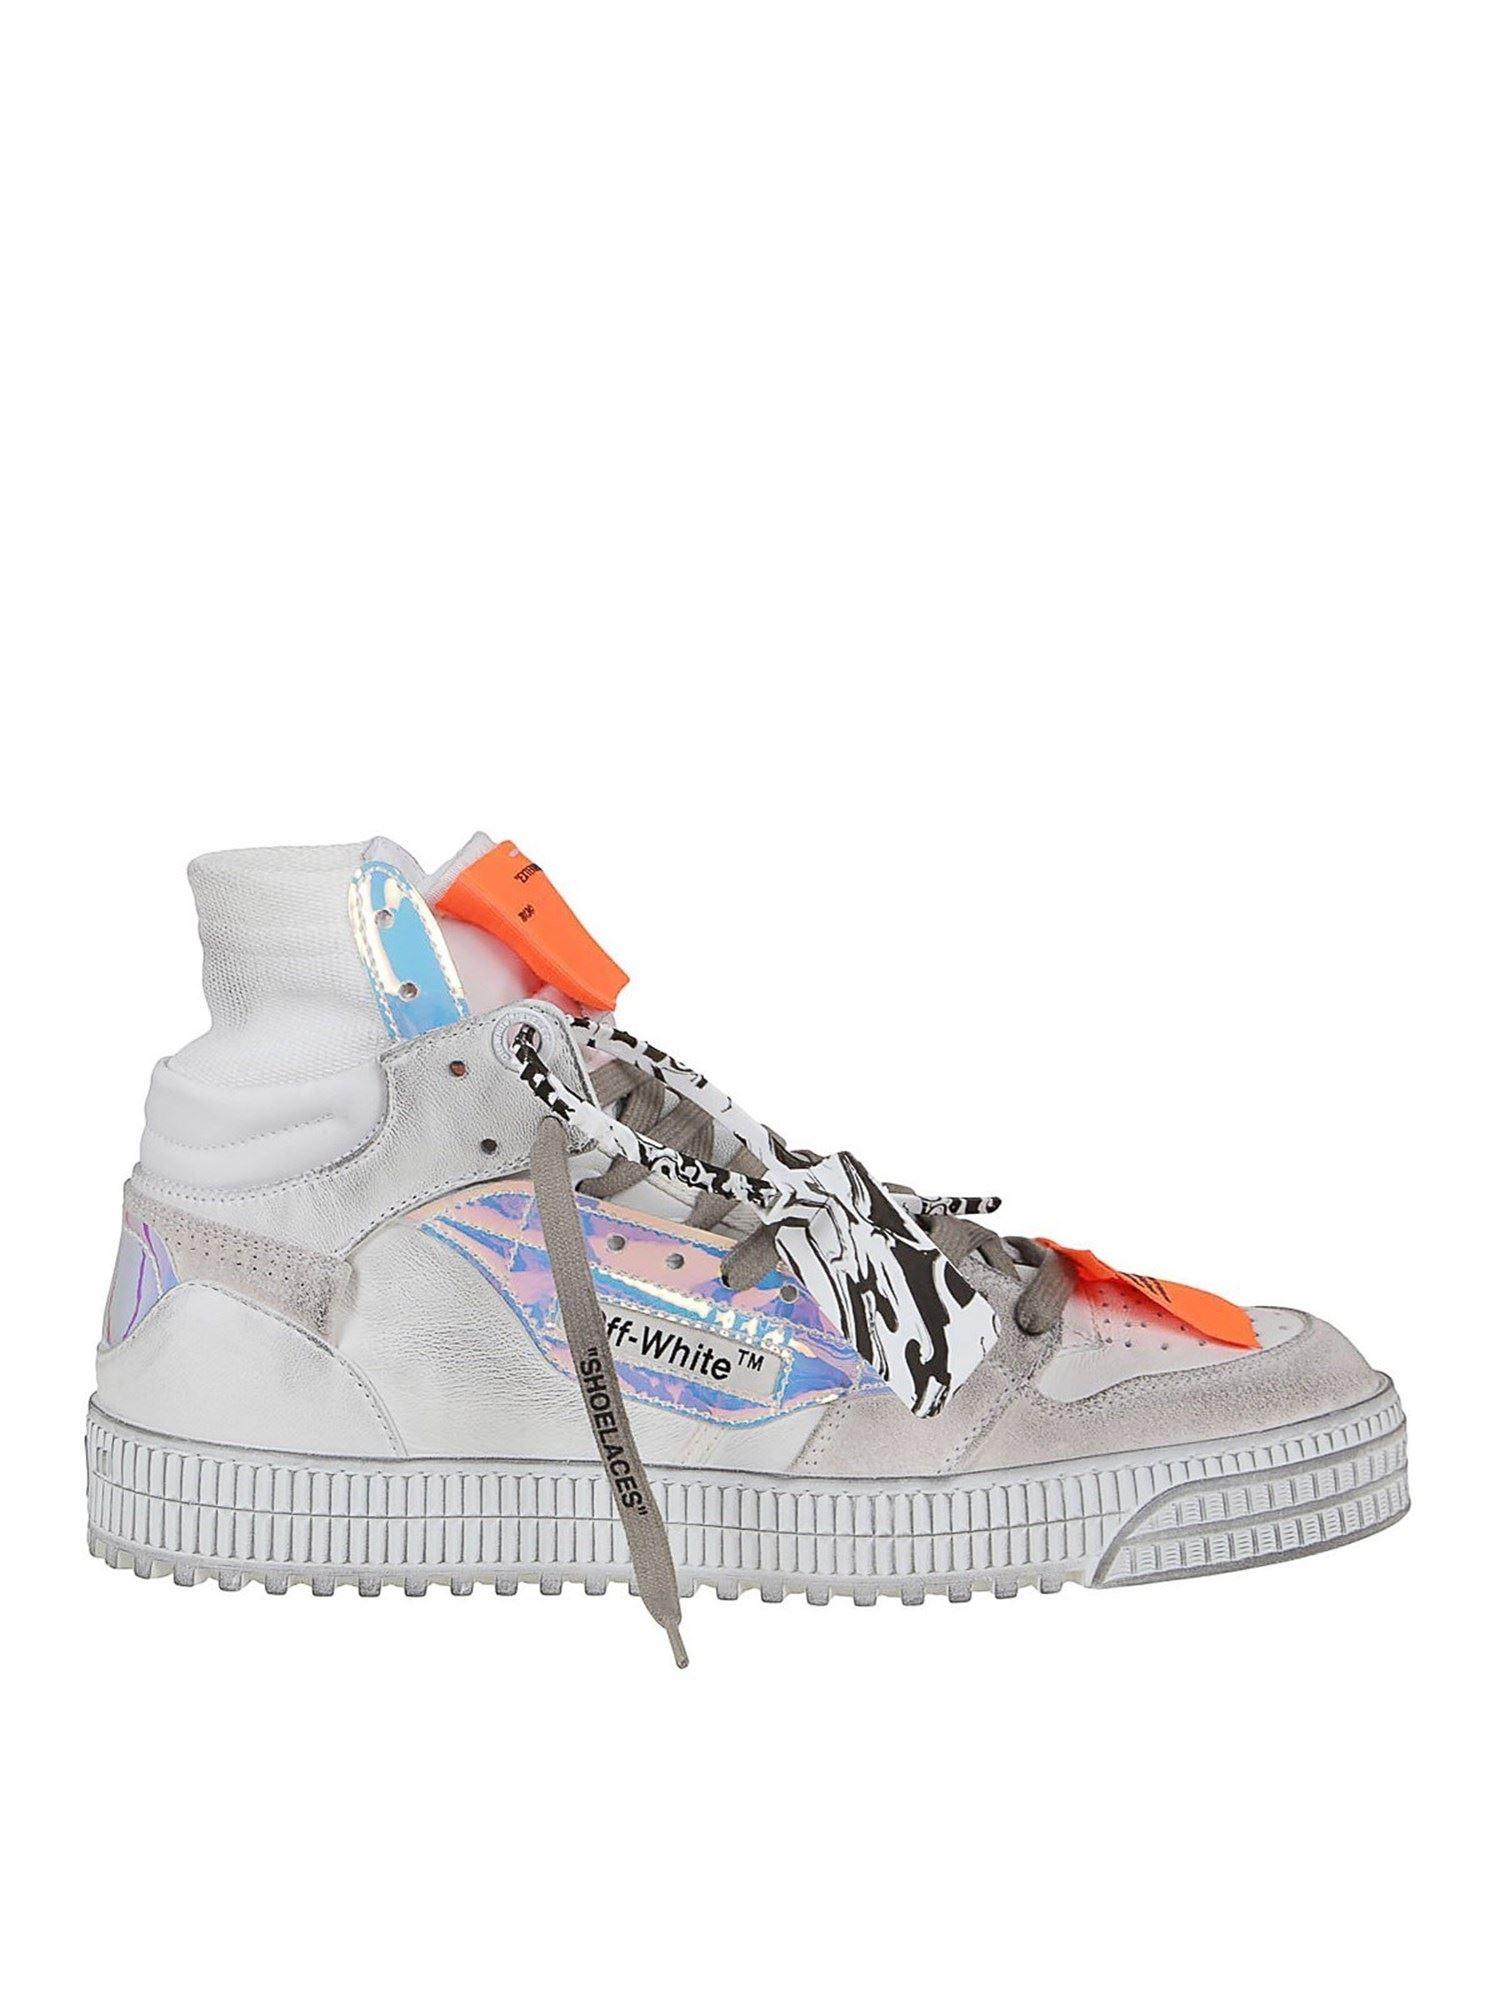 OFF-WHITE OFF COURT SNEAKERS IN WHITE